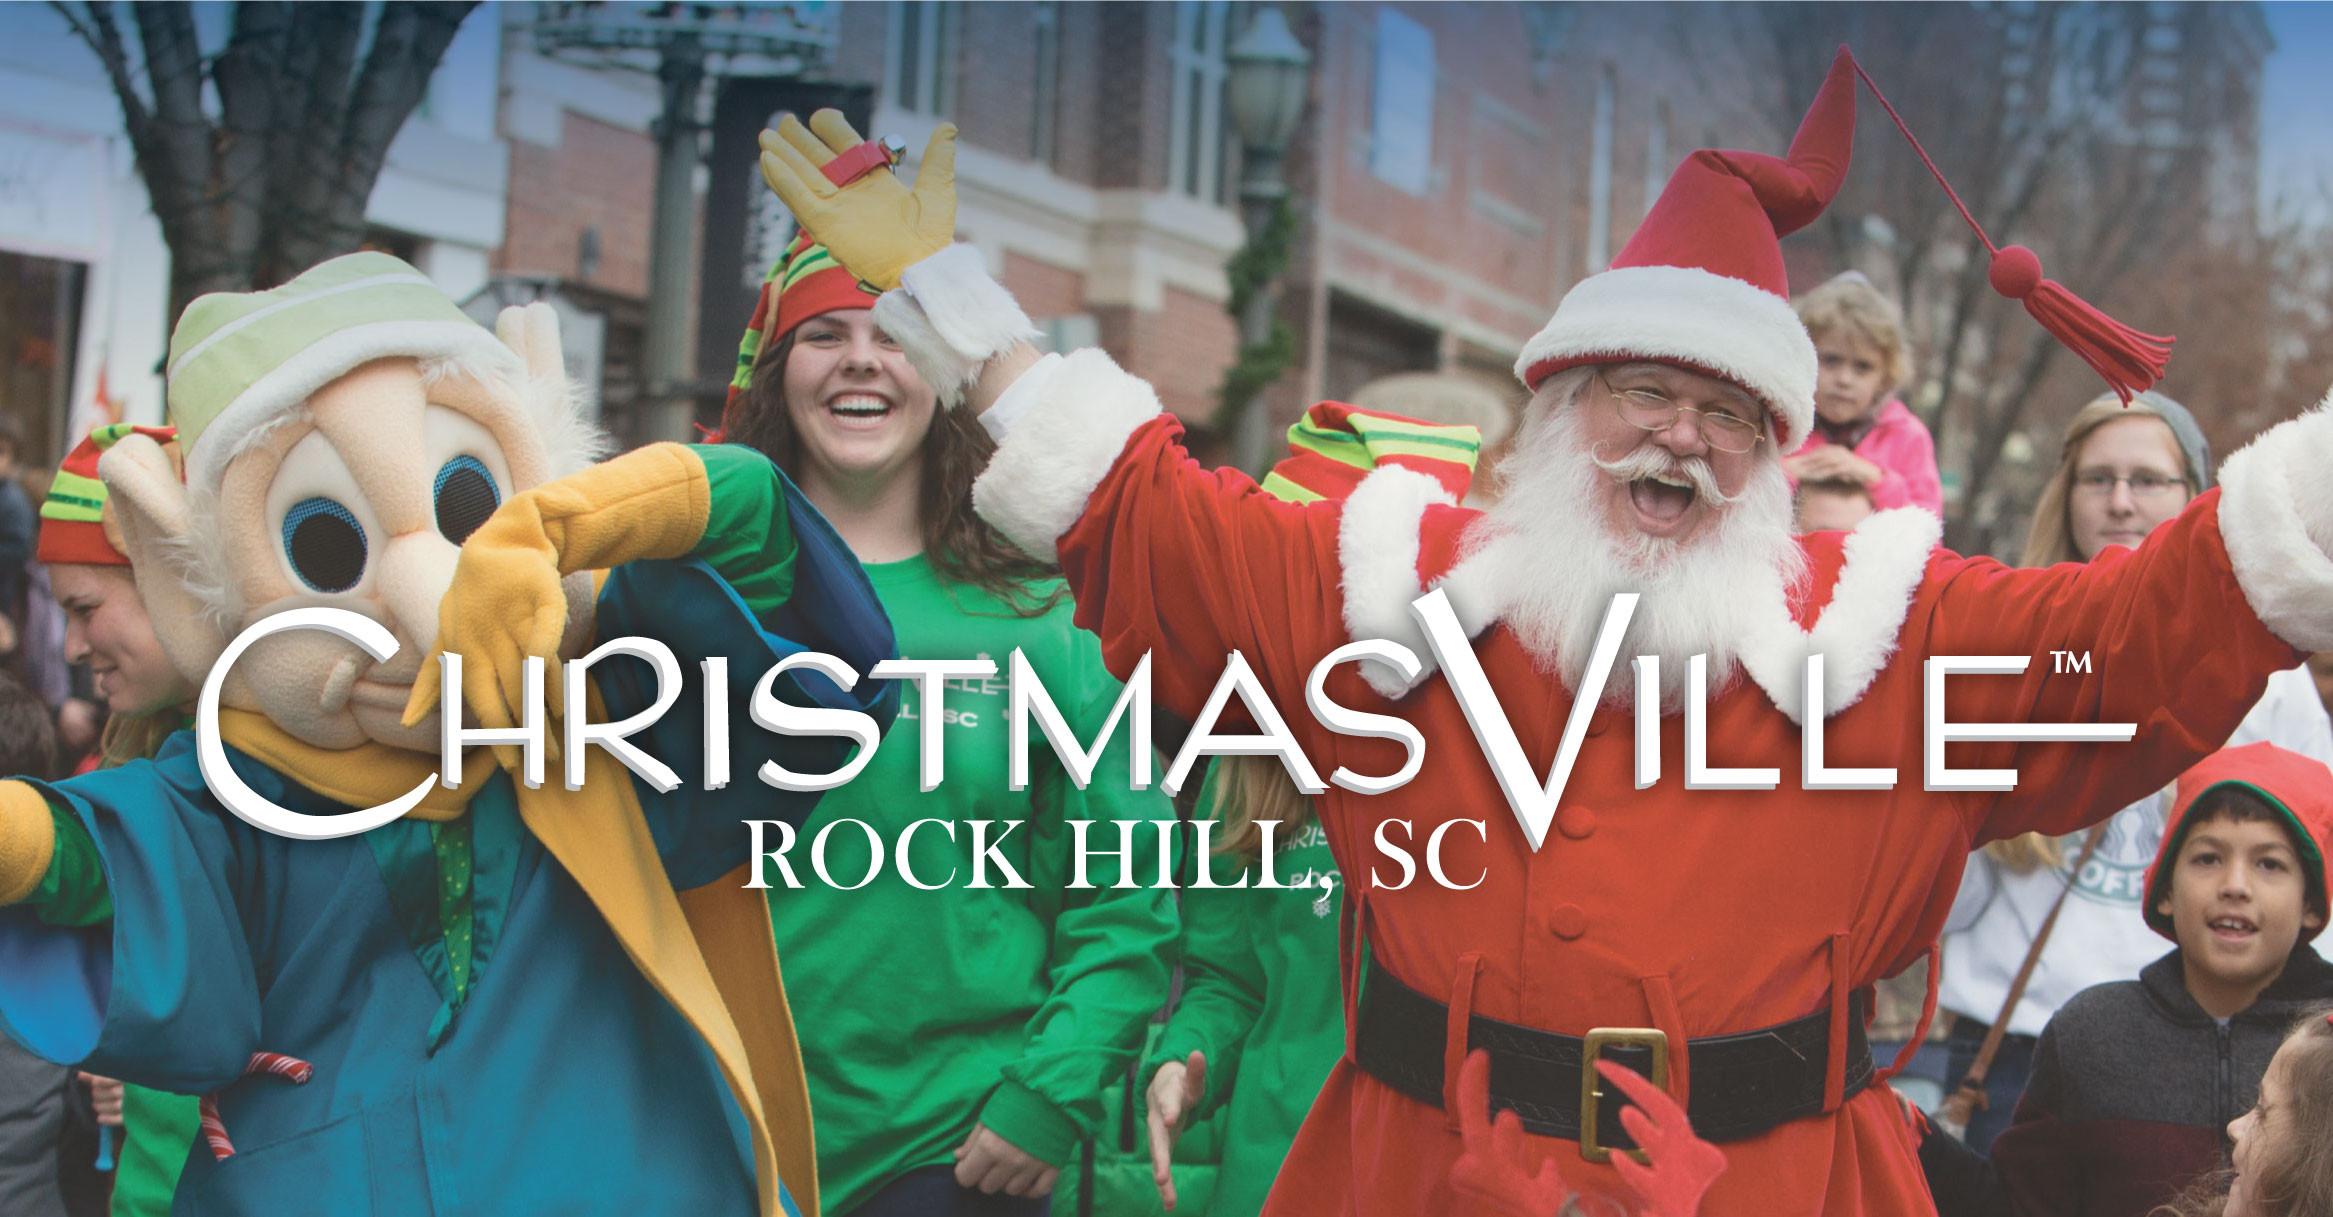 Rock Hill Christmas Parade 2019 2019 Festival Guide | ChristmasVille Rock Hill